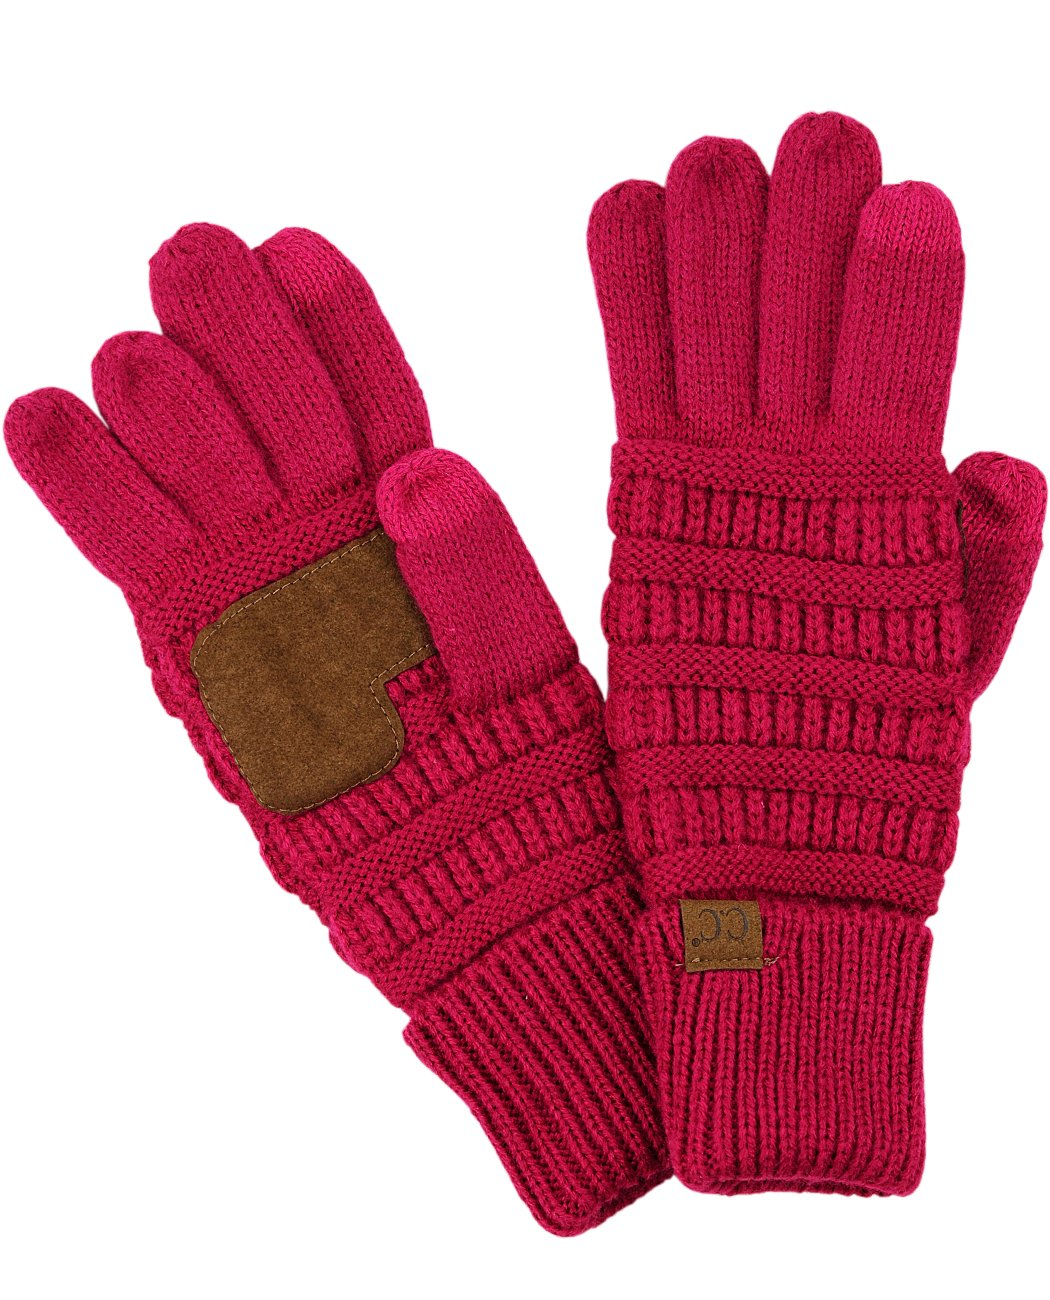 C.C Unisex Cable Knit Winter Warm Anti-Slip Touchscreen Texting Gloves, Hot Pink